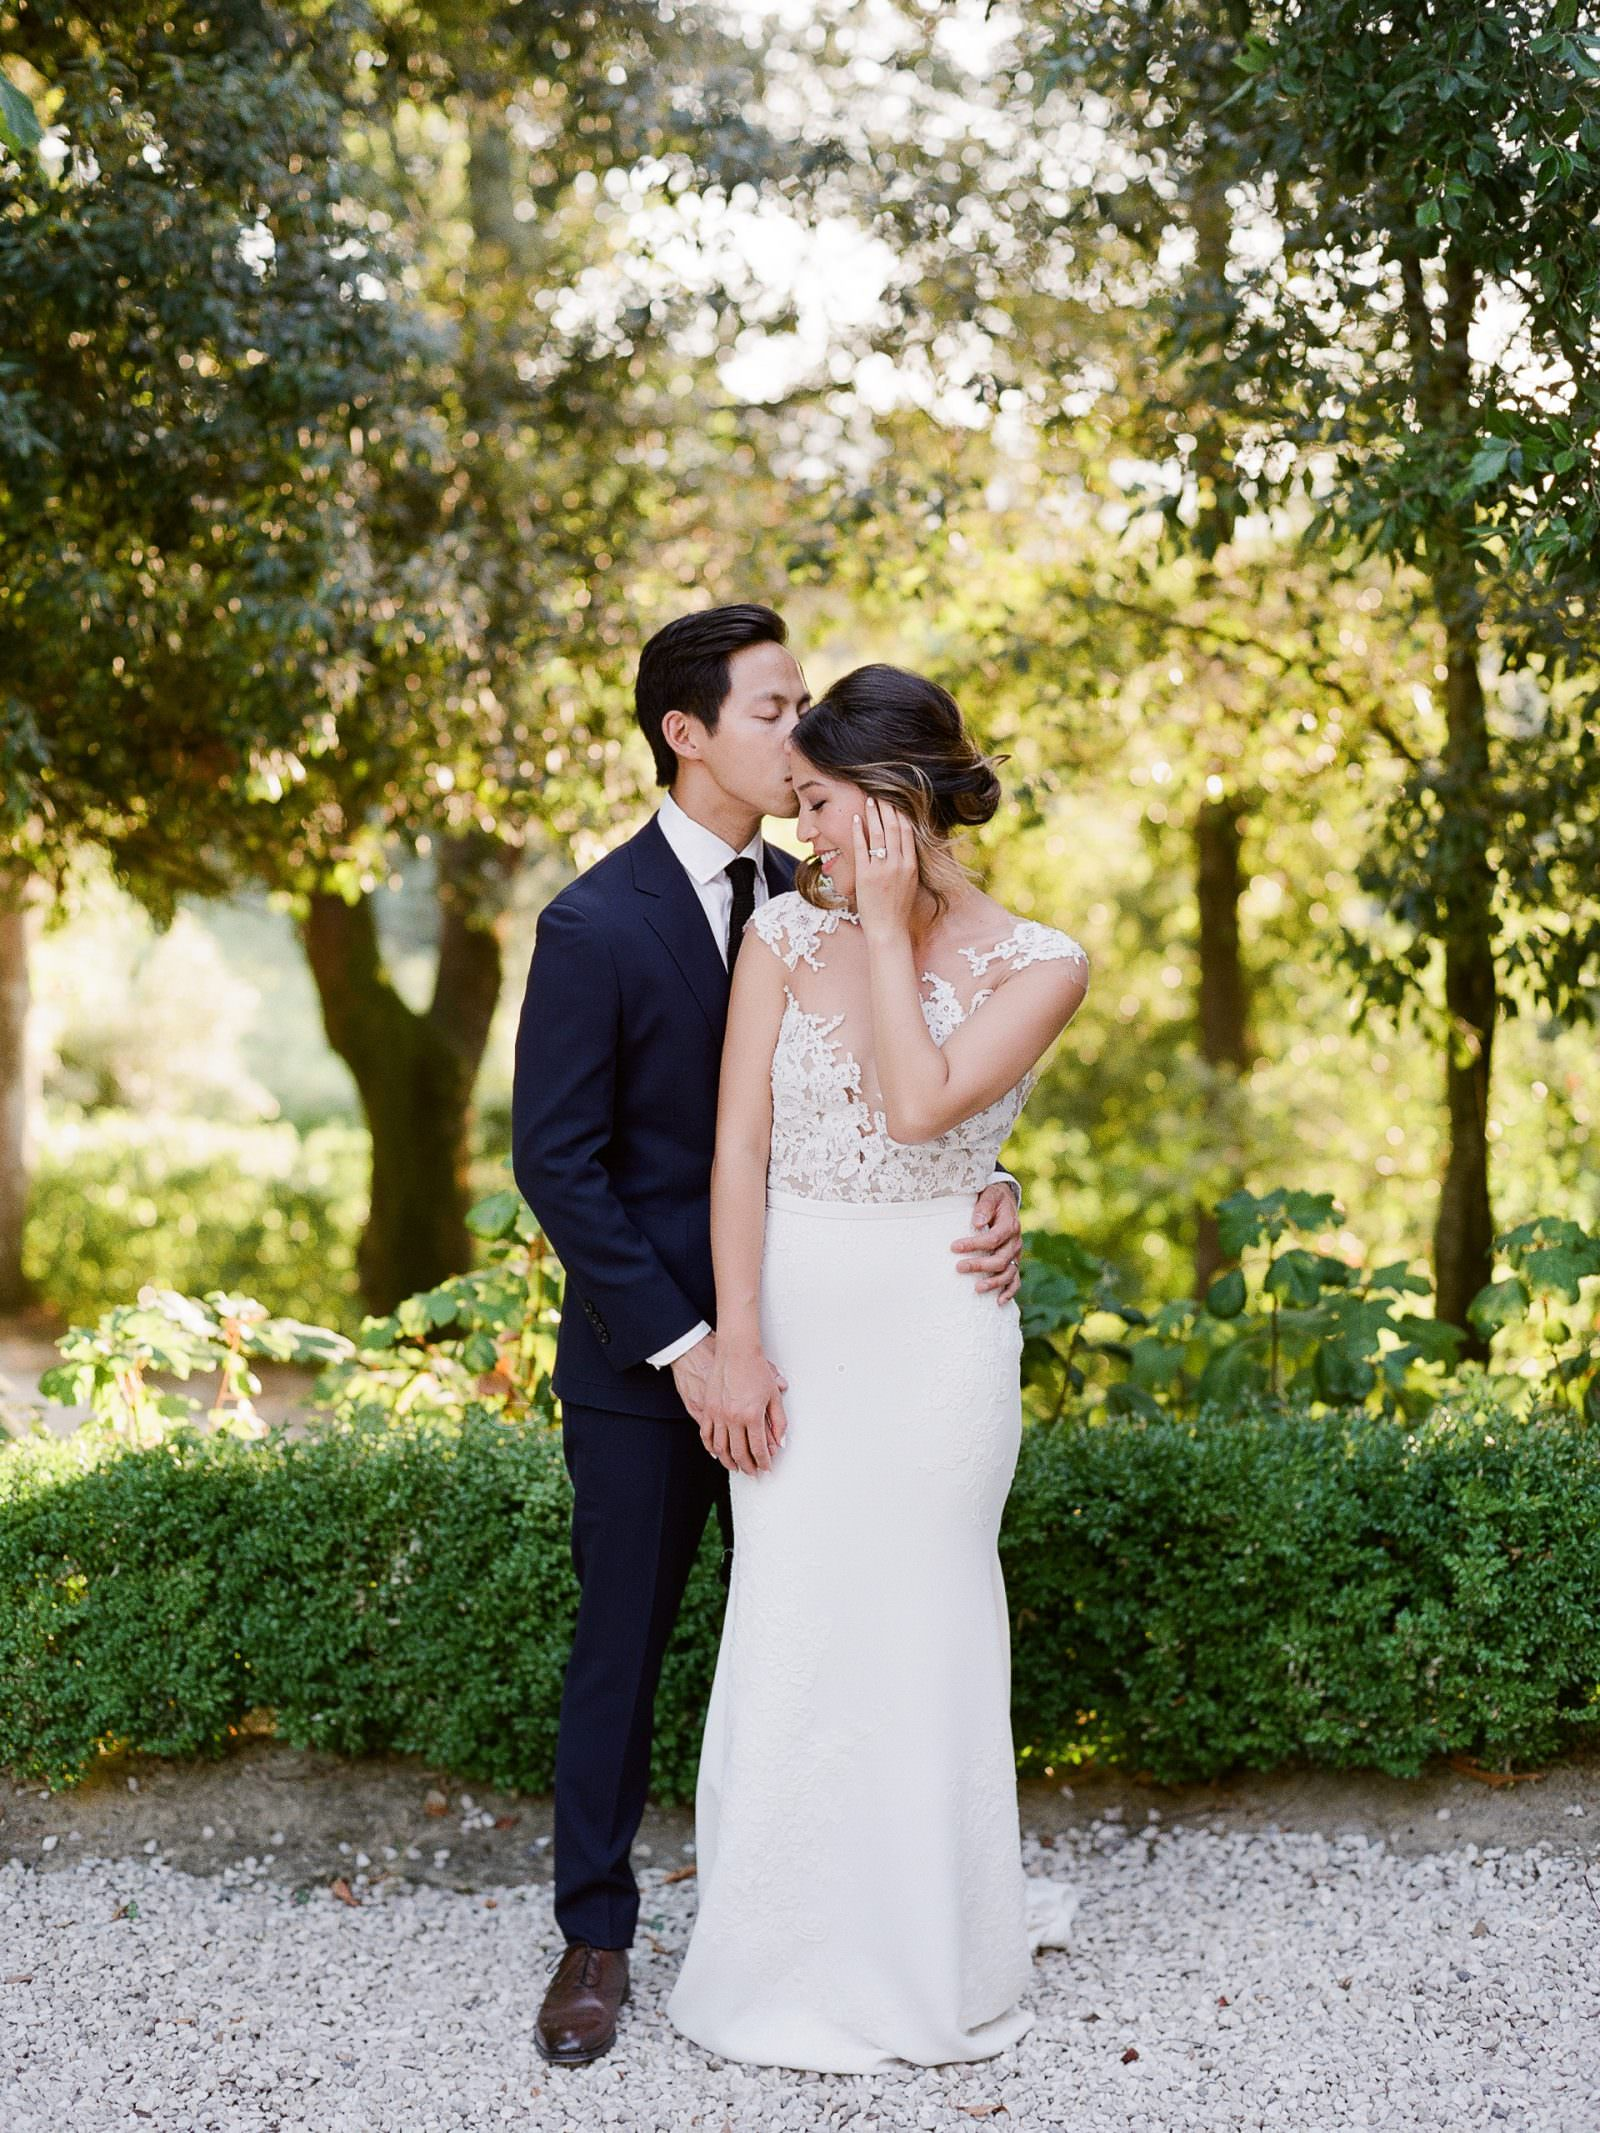 Wedding Portraits at Poggio Piglia, Tuscany by wedding photographer Adrian Wood